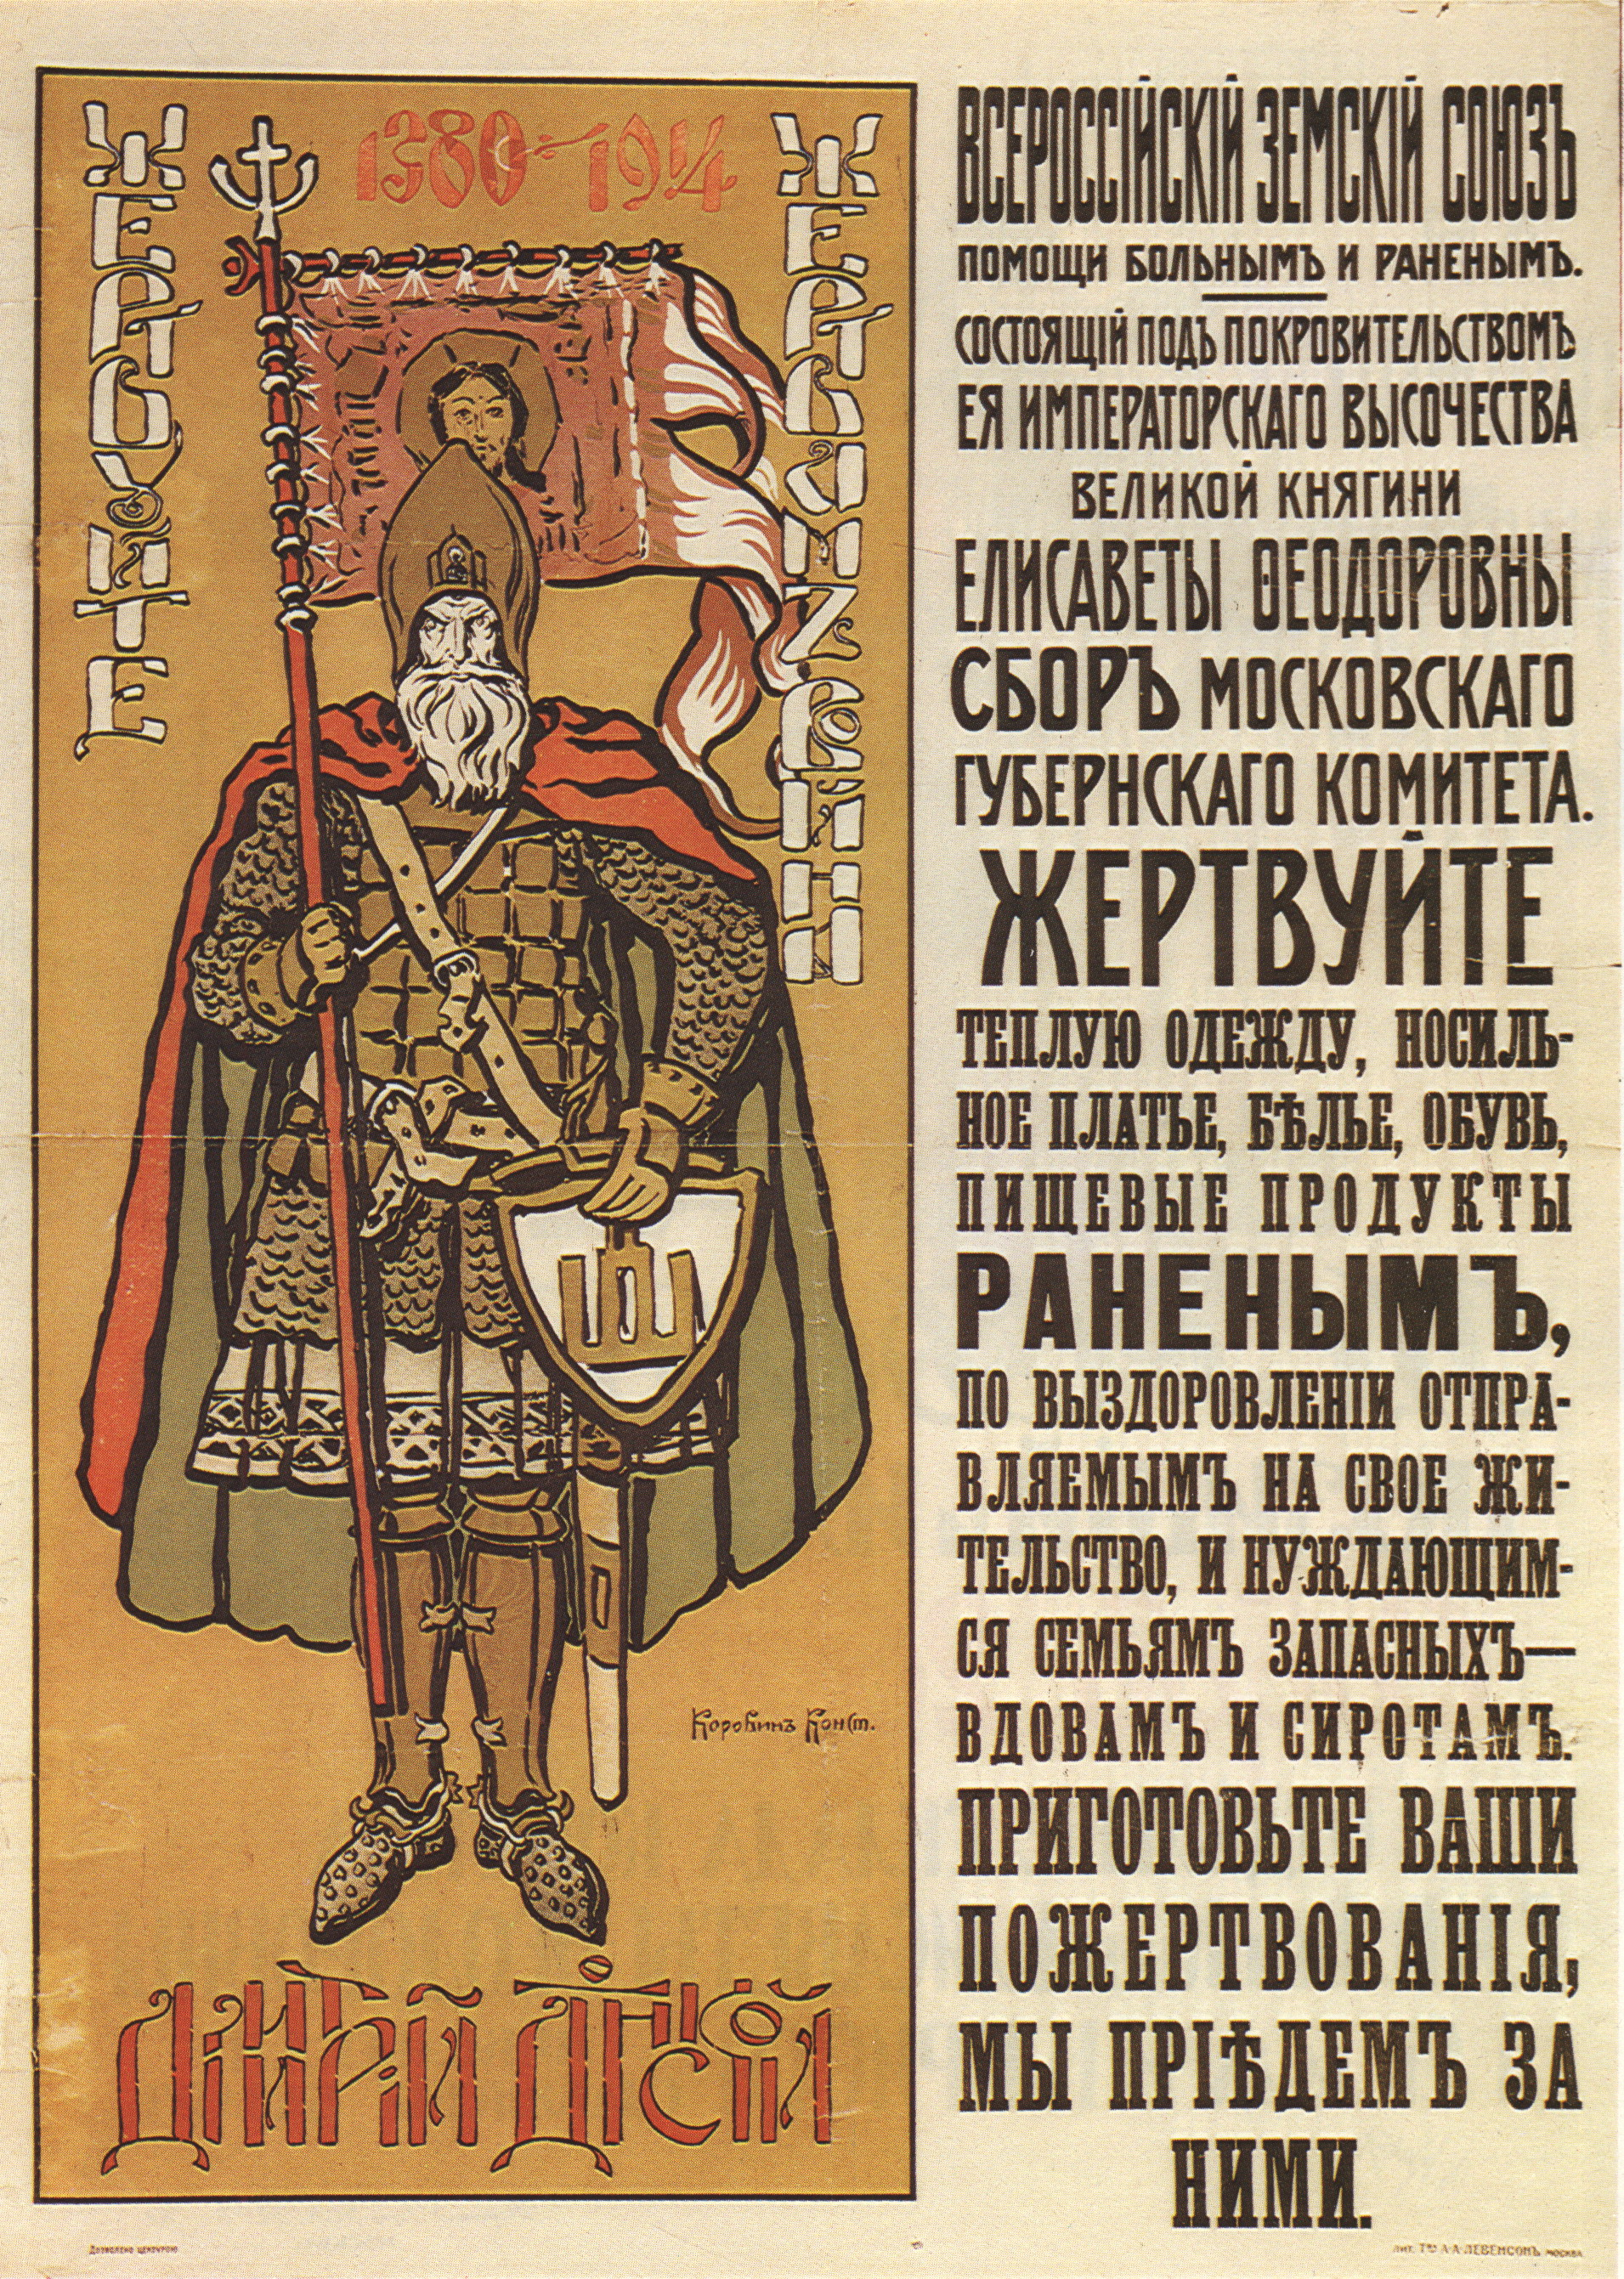 http://upload.wikimedia.org/wikipedia/commons/3/3d/Russian_poster_WWI_011.jpg?uselang=ru